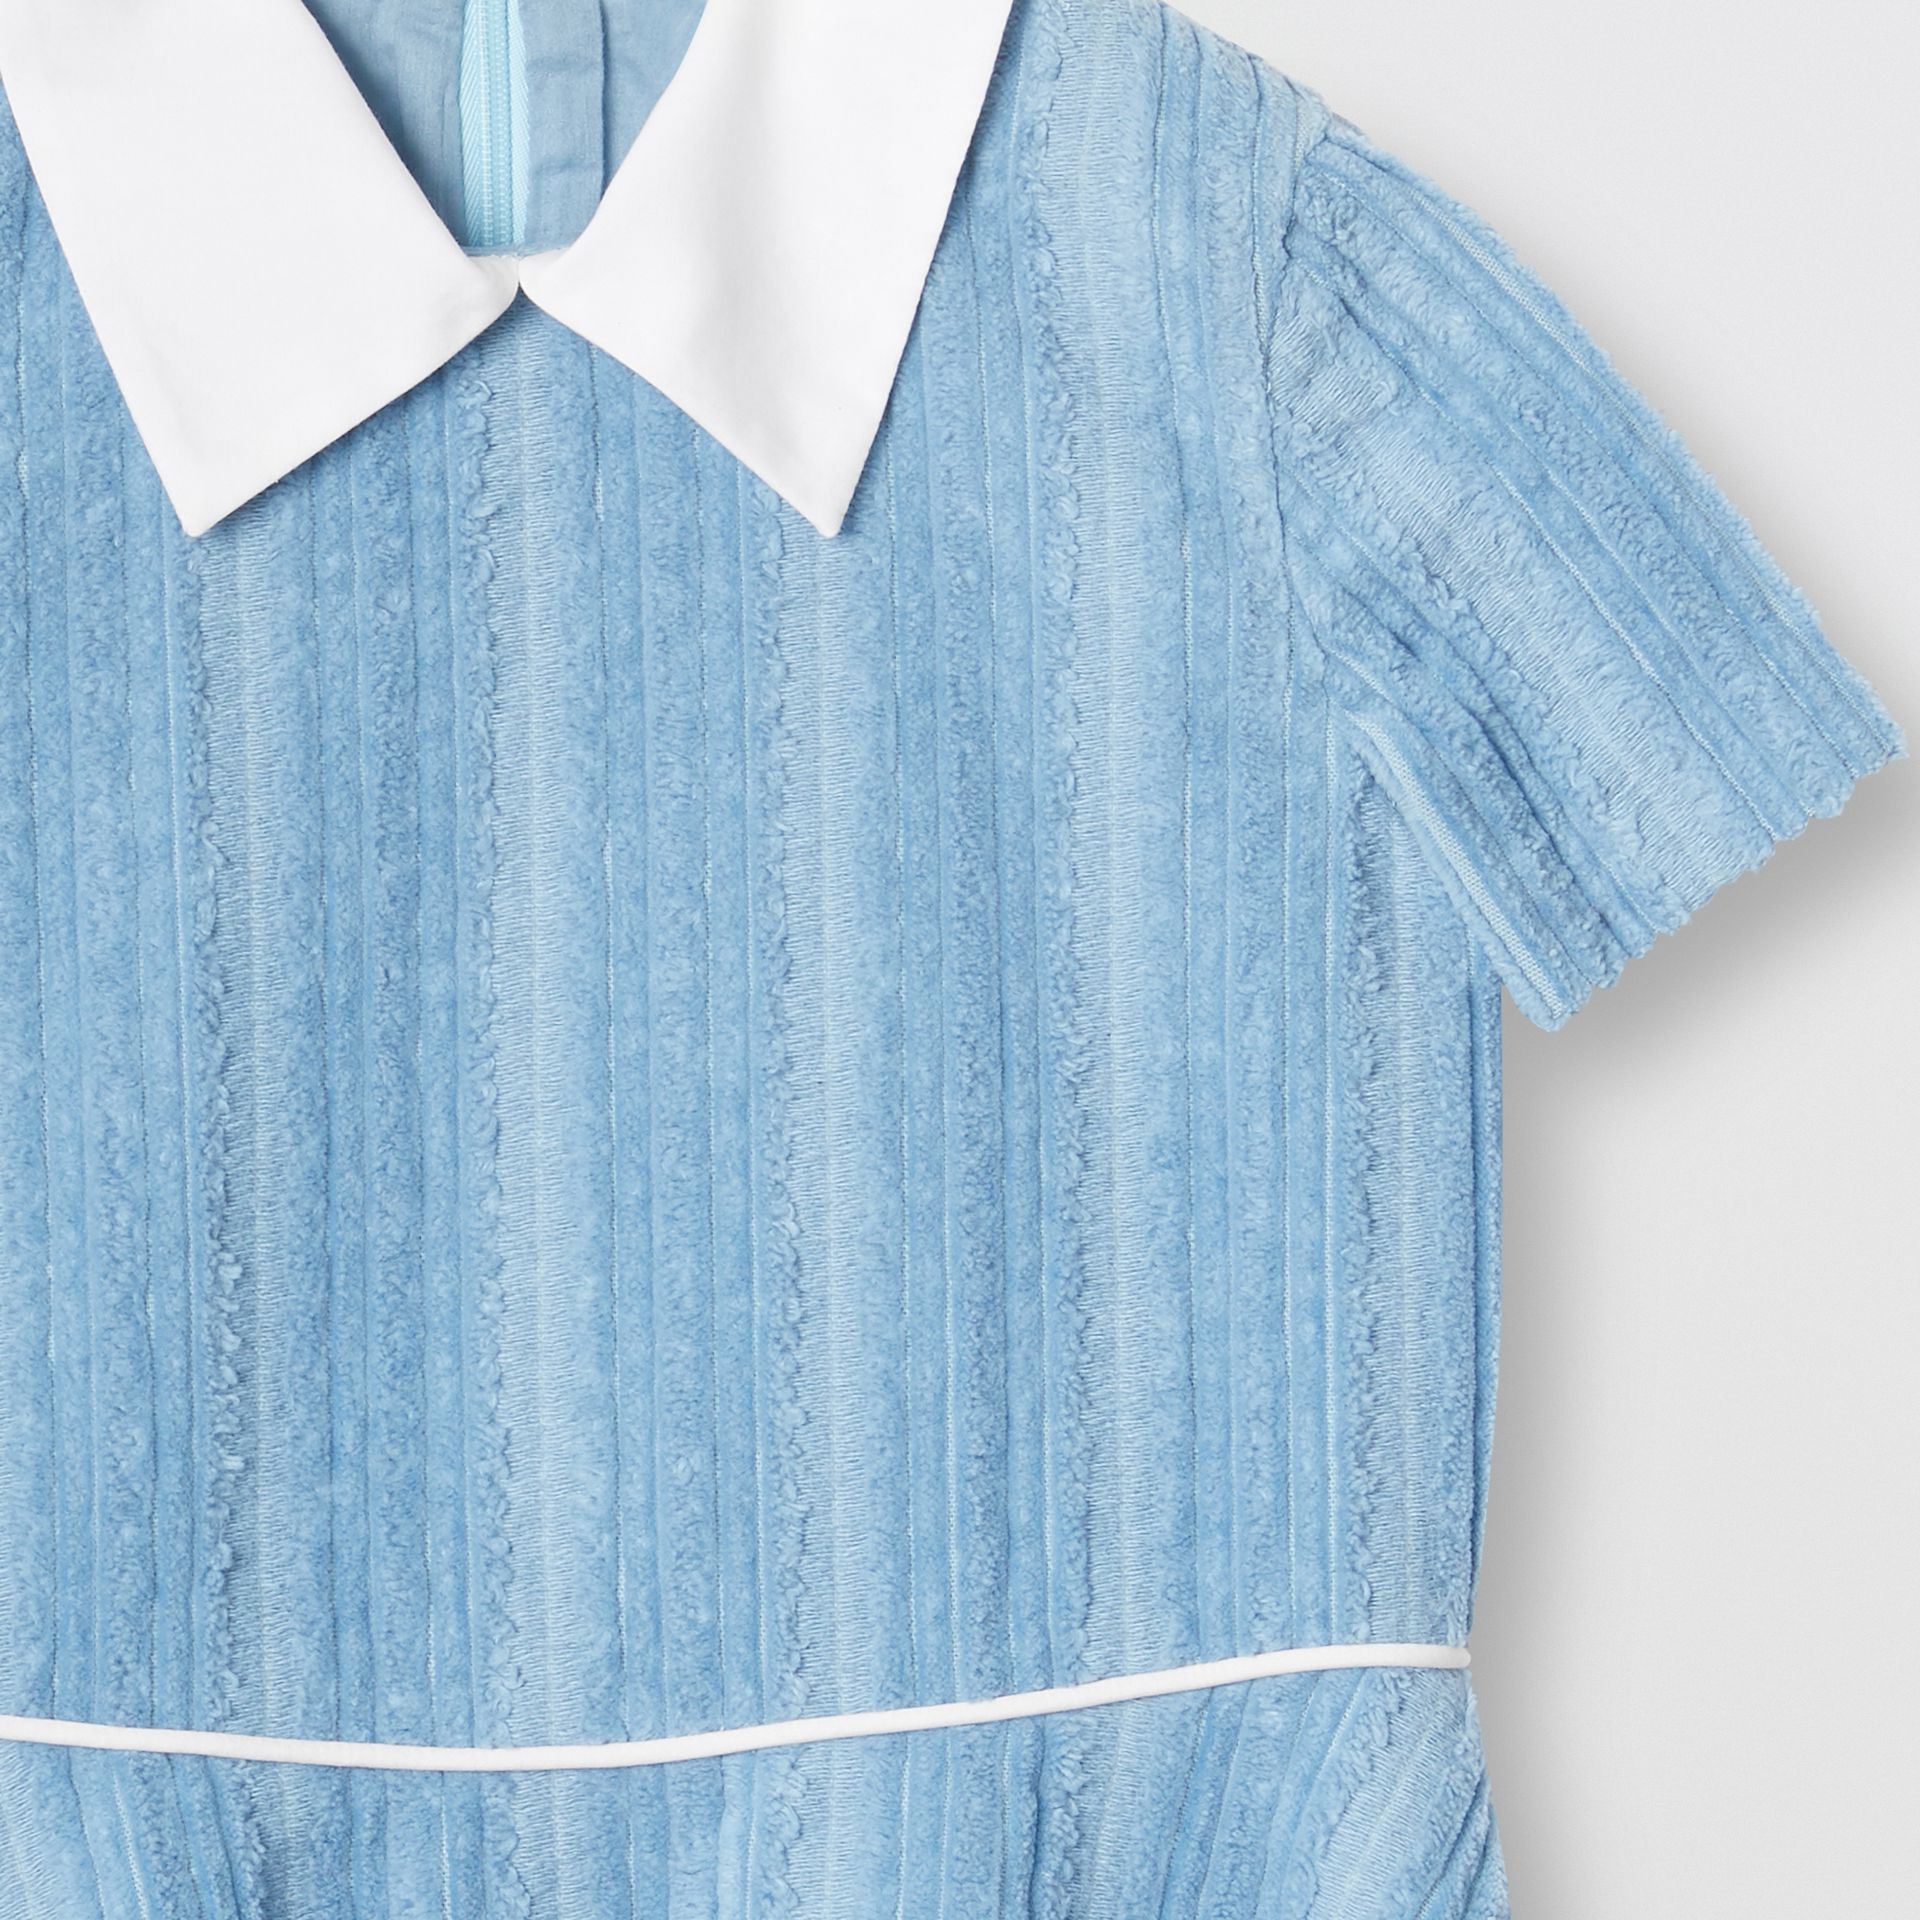 Peter Pan Collar Corduroy Dress in Powder Blue | Burberry - gallery image 4